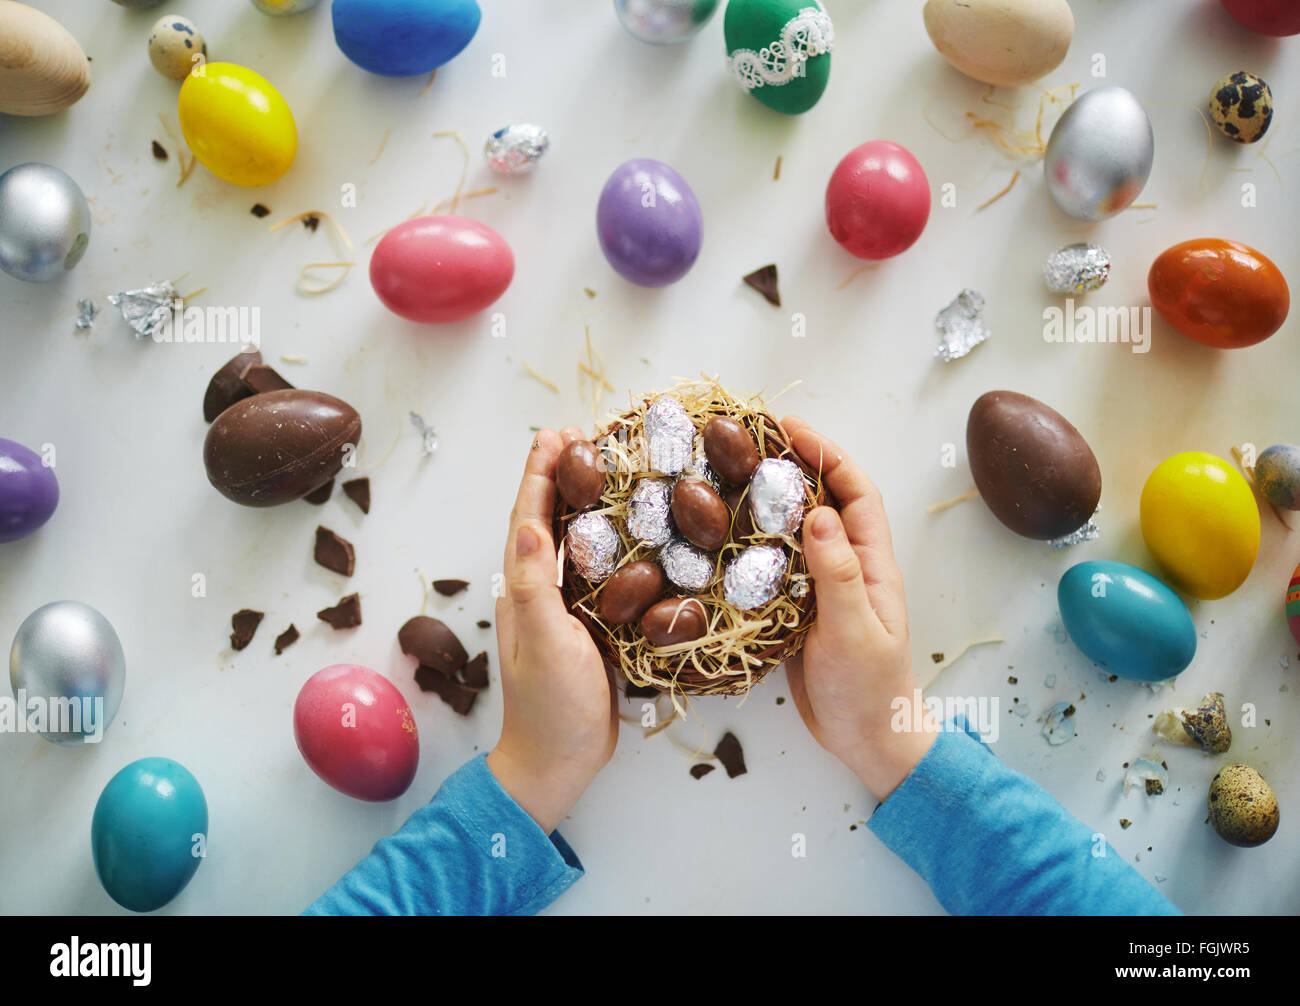 Hands of child holding small nest with chocolate eggs - Stock Image